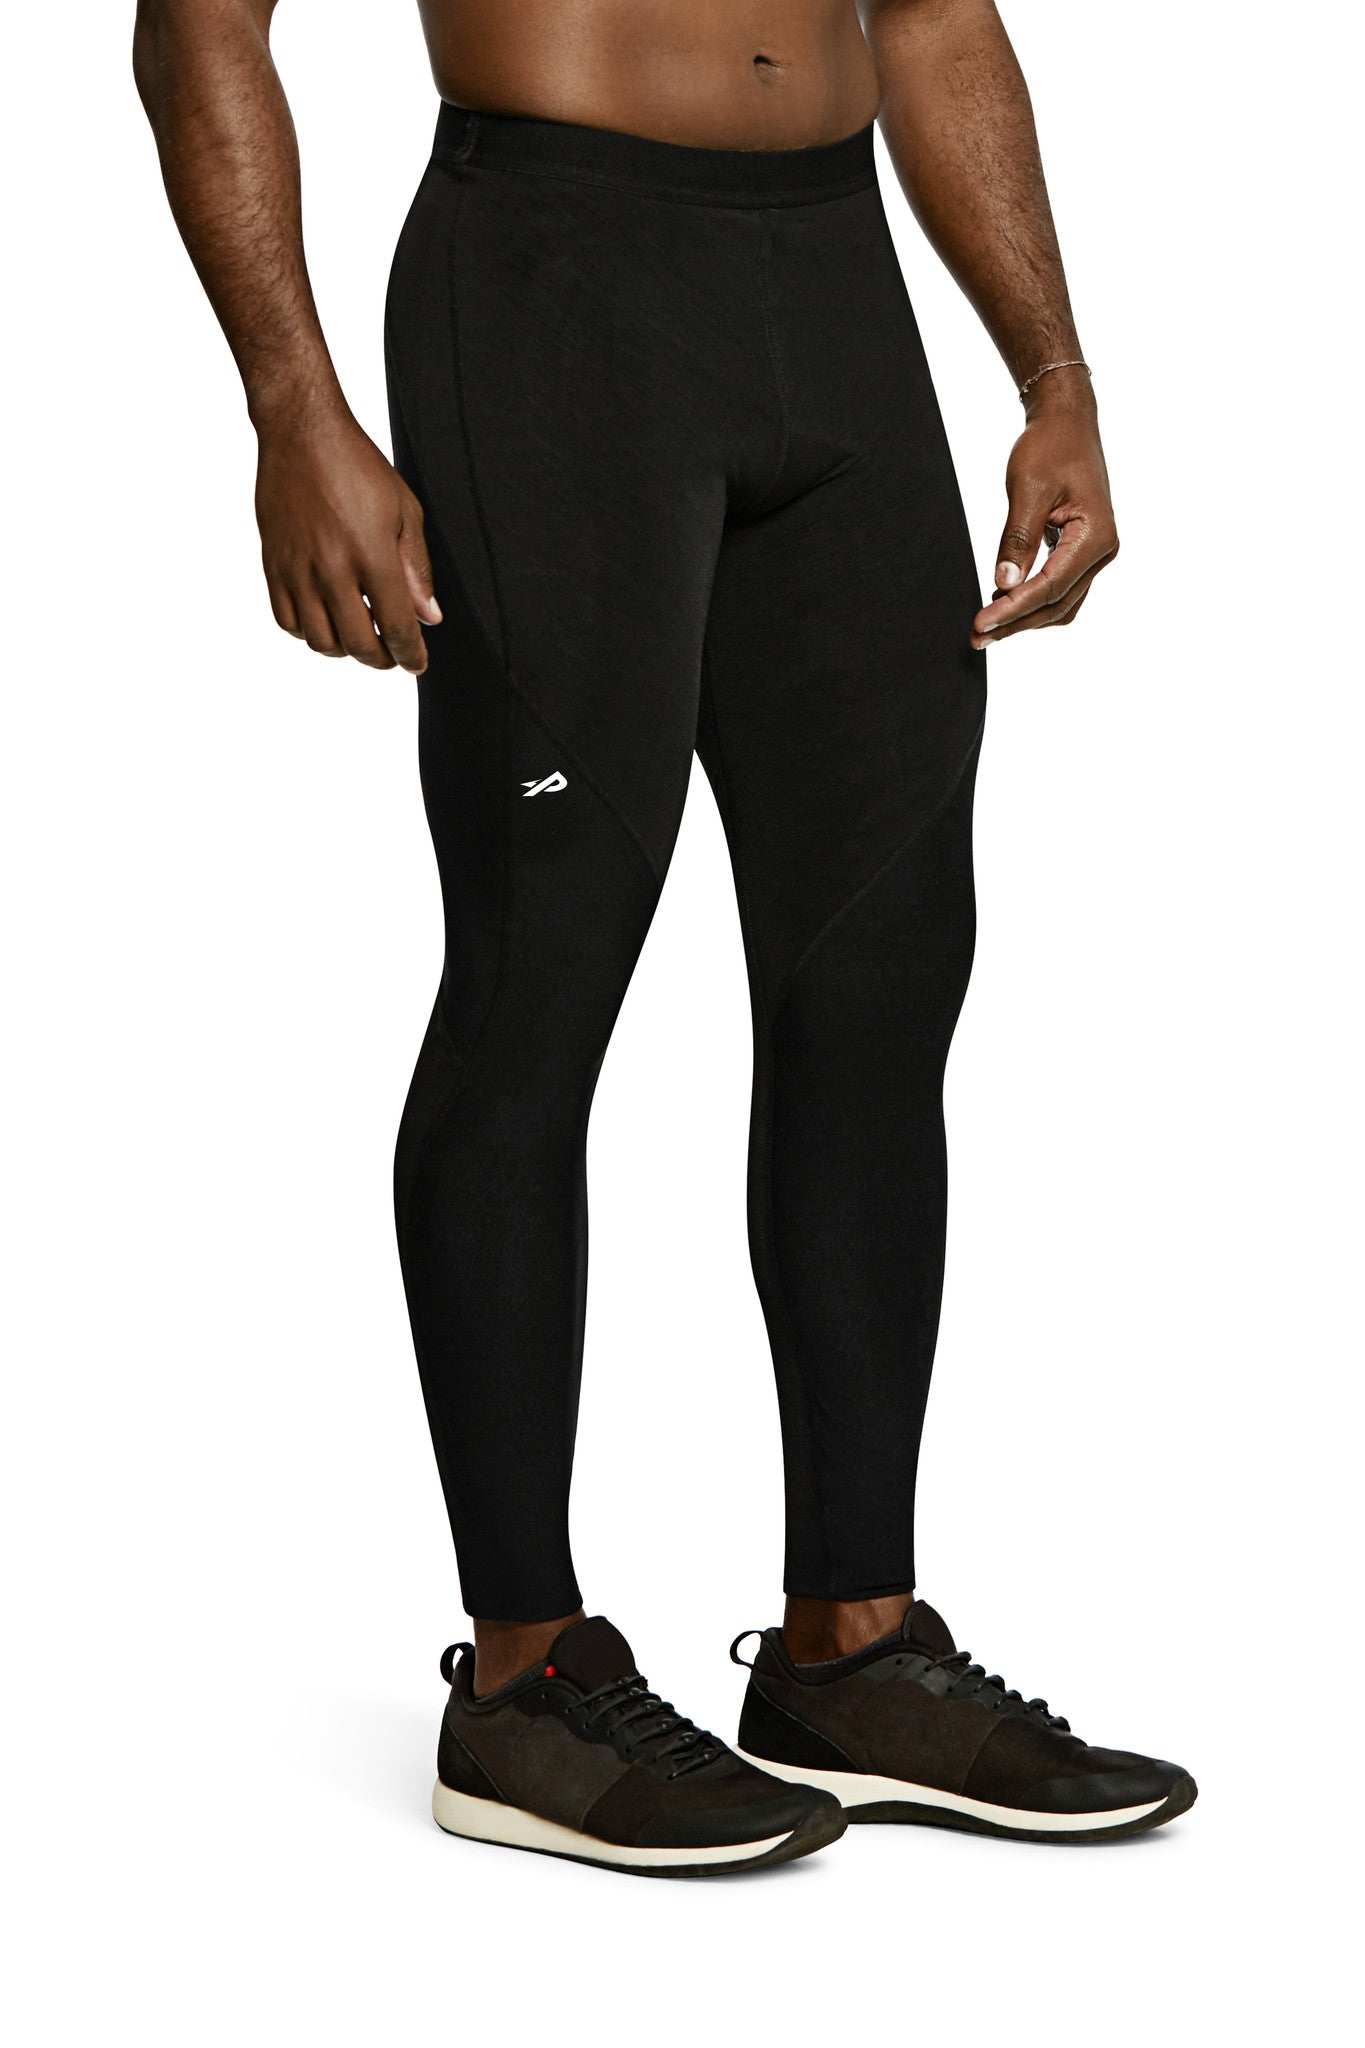 pro resistance tights for men � physiclo